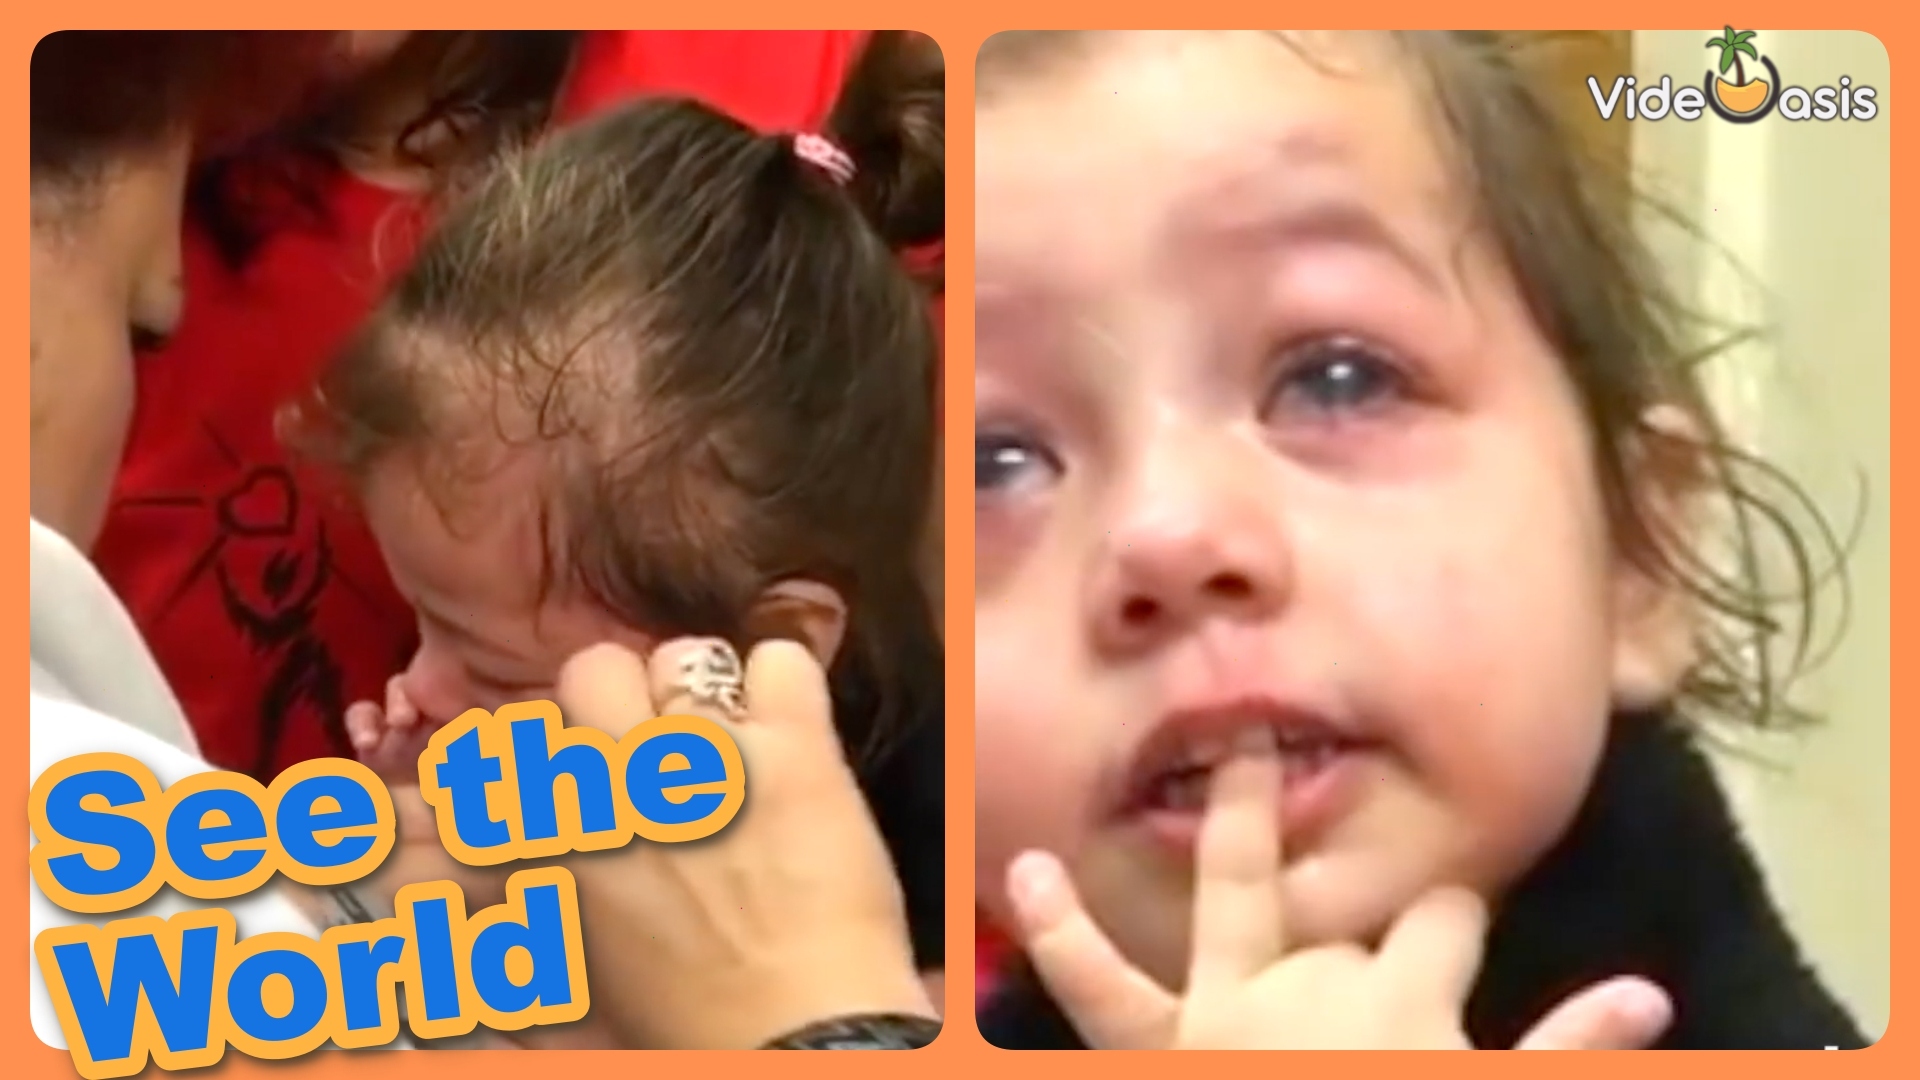 The toddler finally can see her mom after miracle surgery |VideOasis